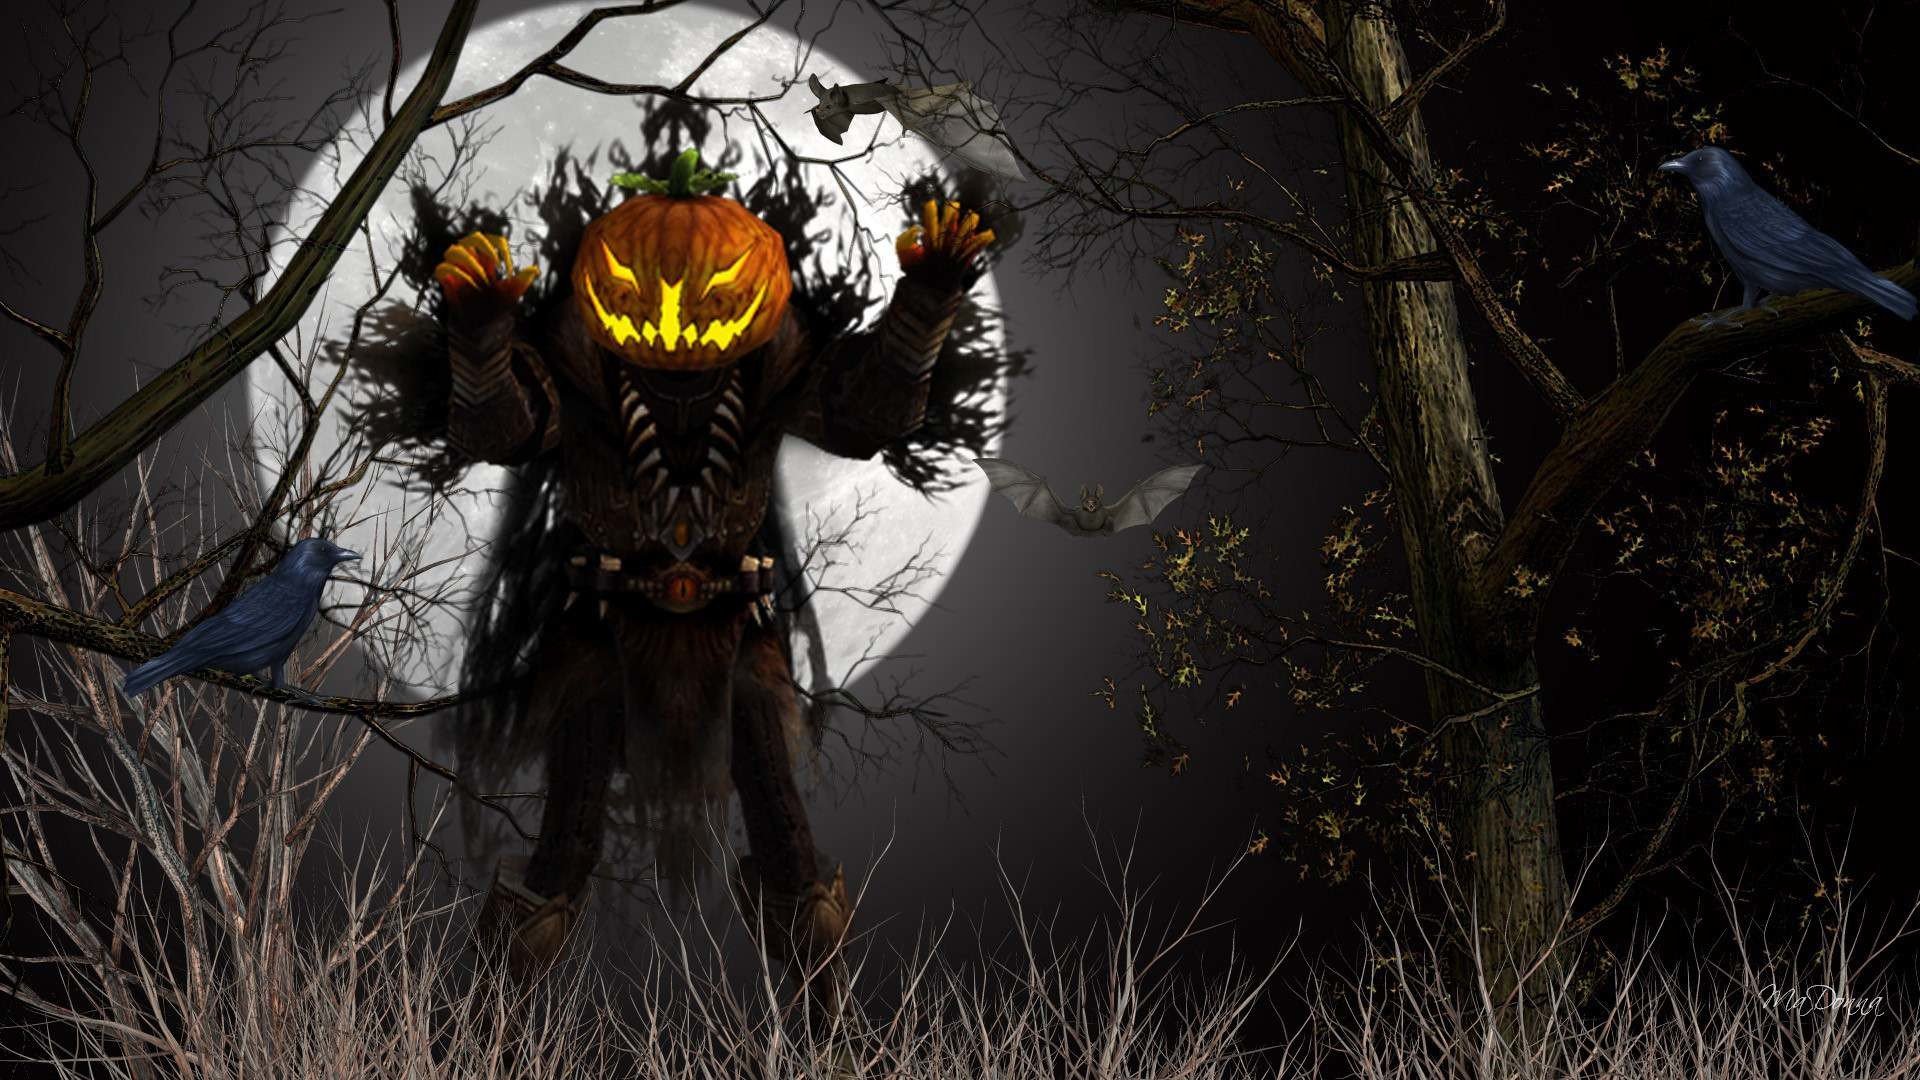 Res: 1920x1080, Weird Scary Halloween Picture Wallpaper